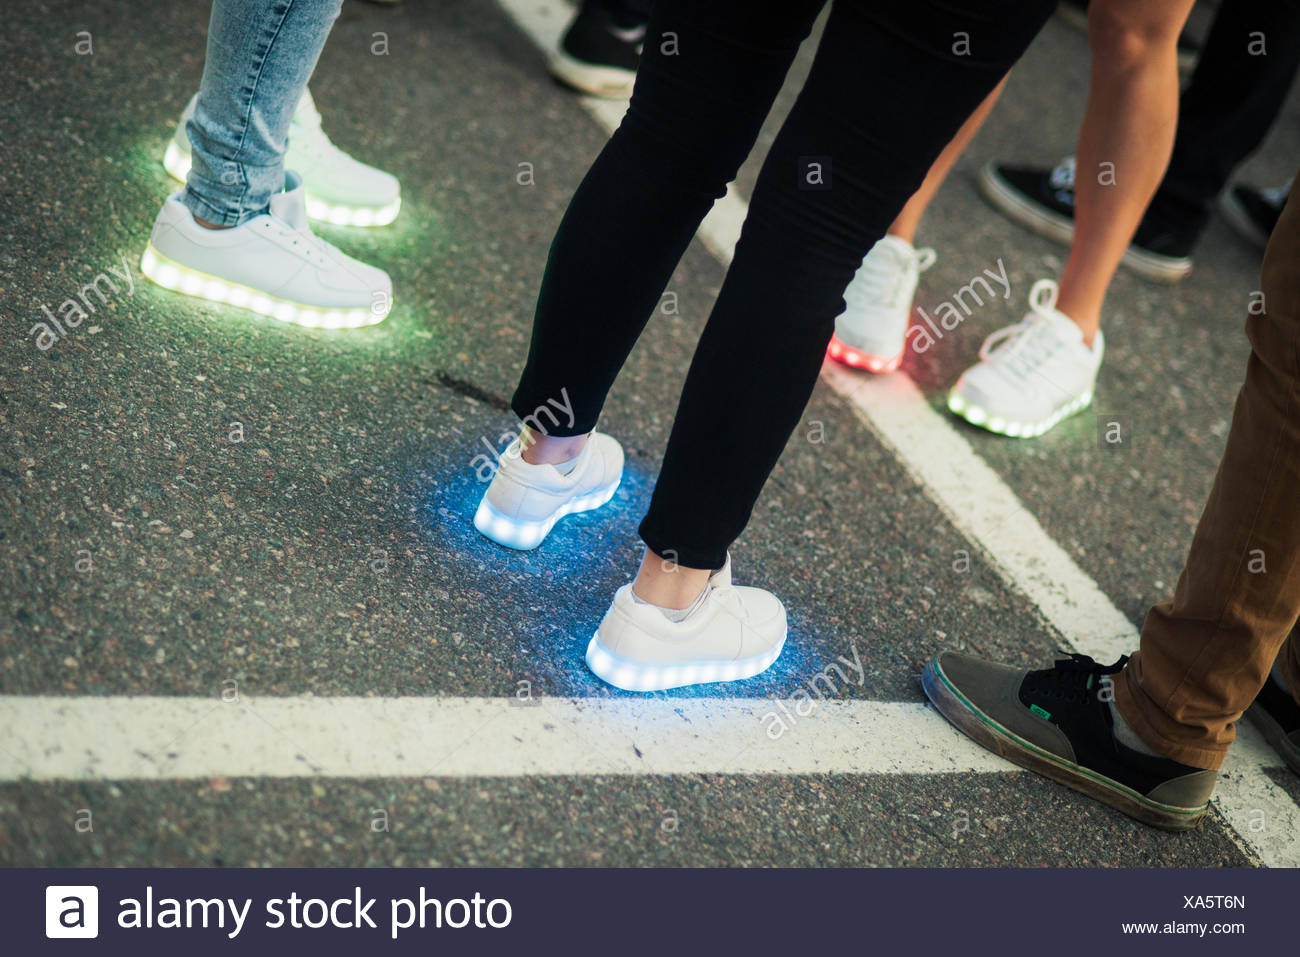 Finland, Varsinais-Suomi, People wearing trainers with glowing sole - Stock Image